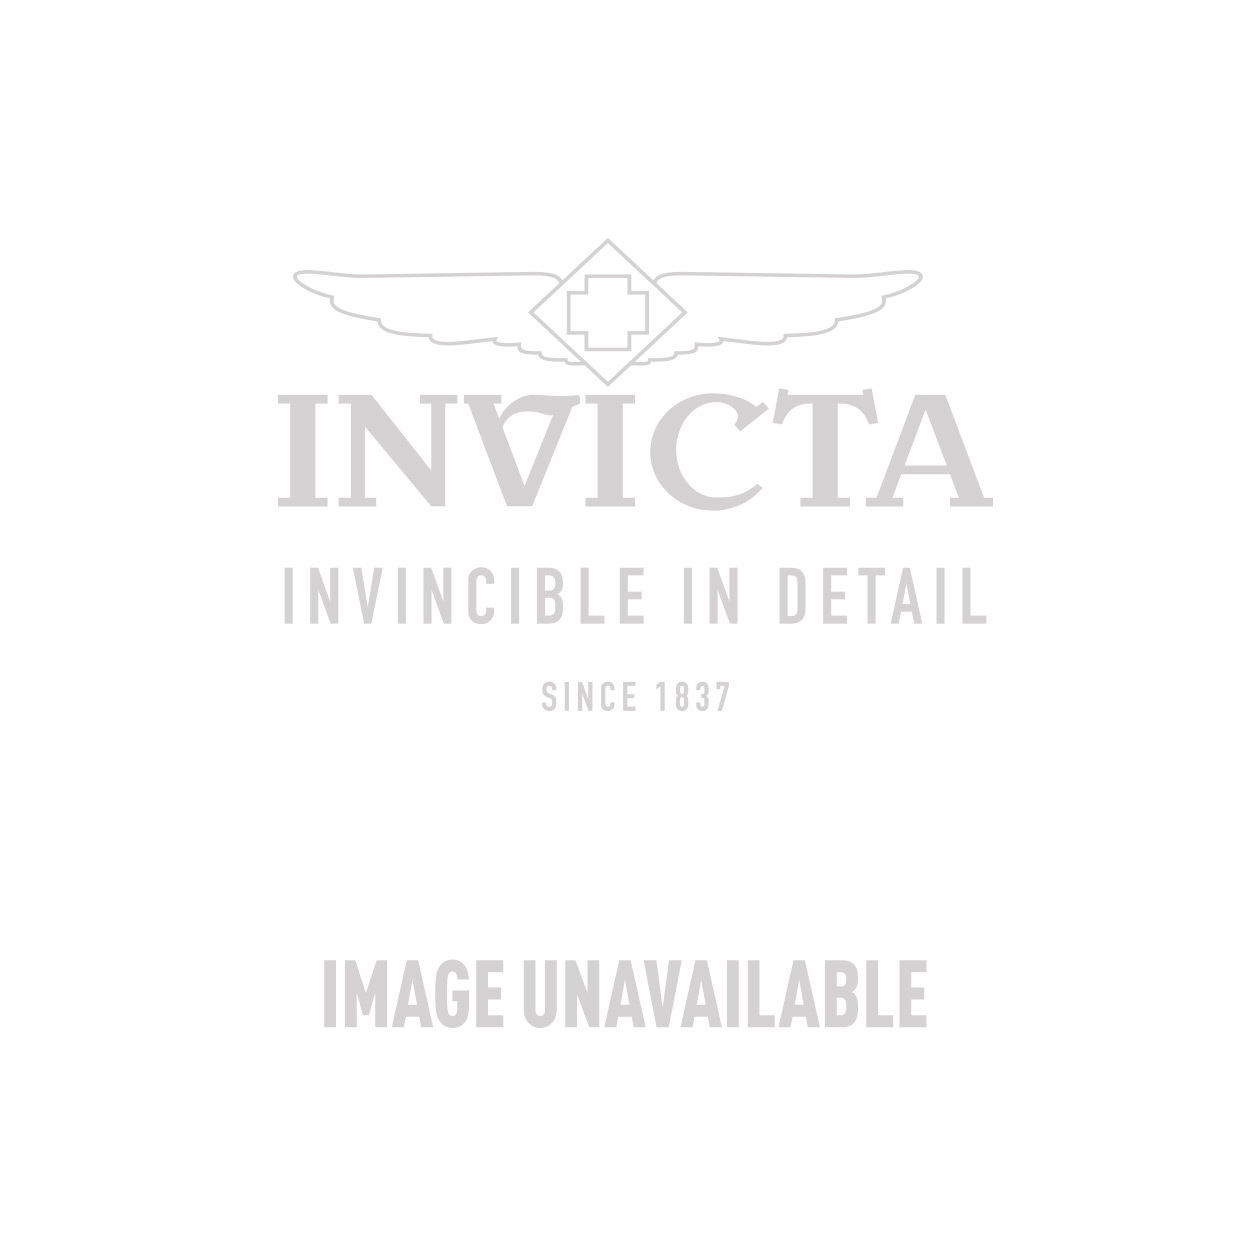 Invicta DNA Swiss Movement Quartz Watch - Stainless Steel case with Black tone Silicone band - Model 10440